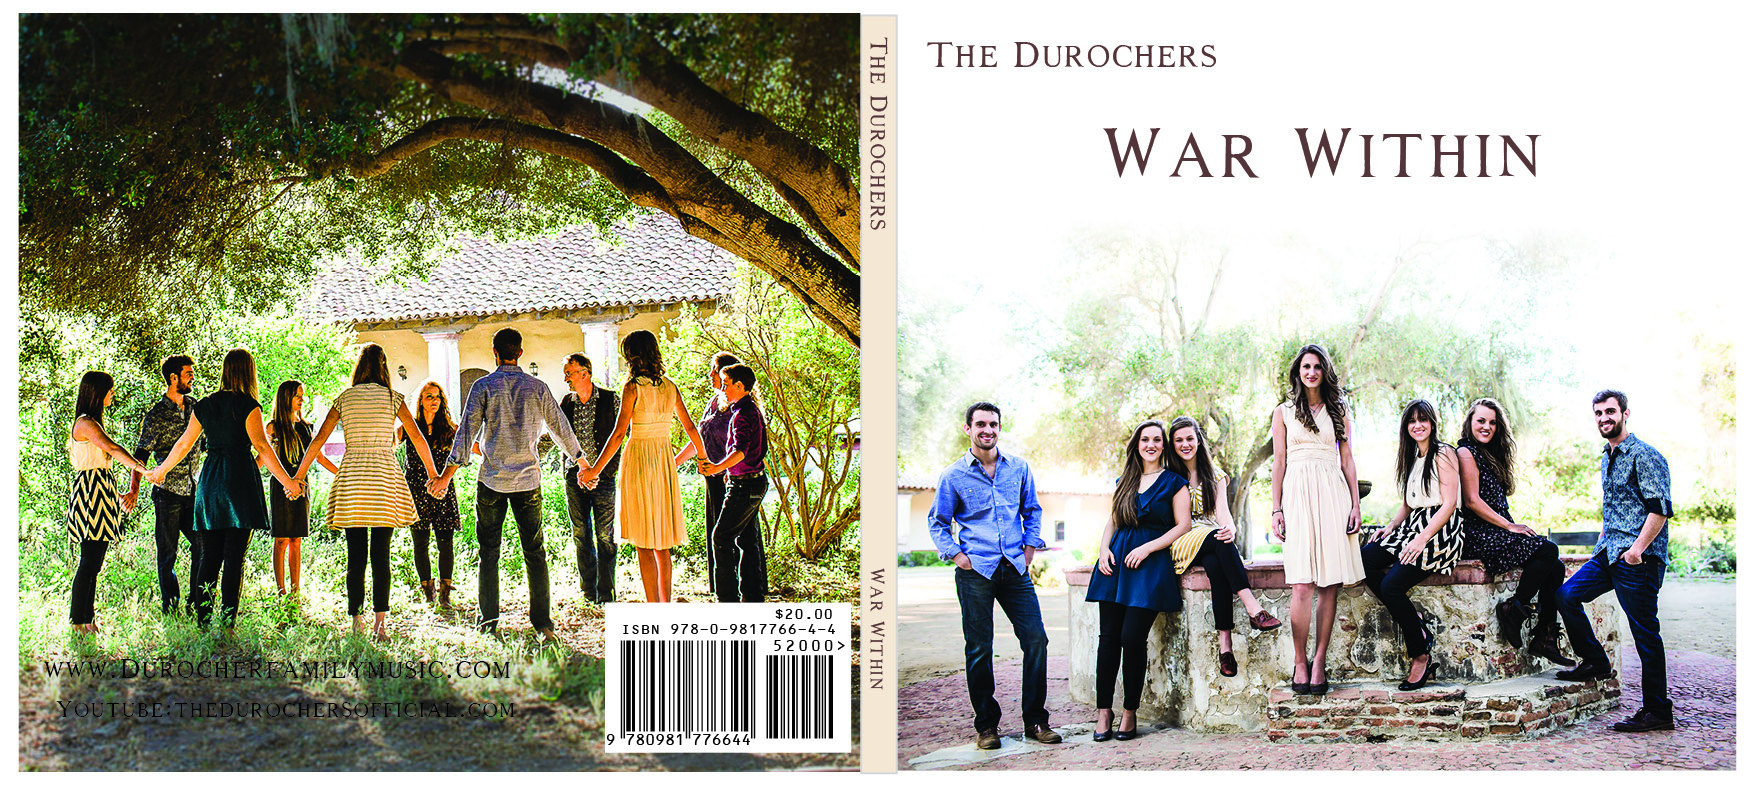 War within front cover